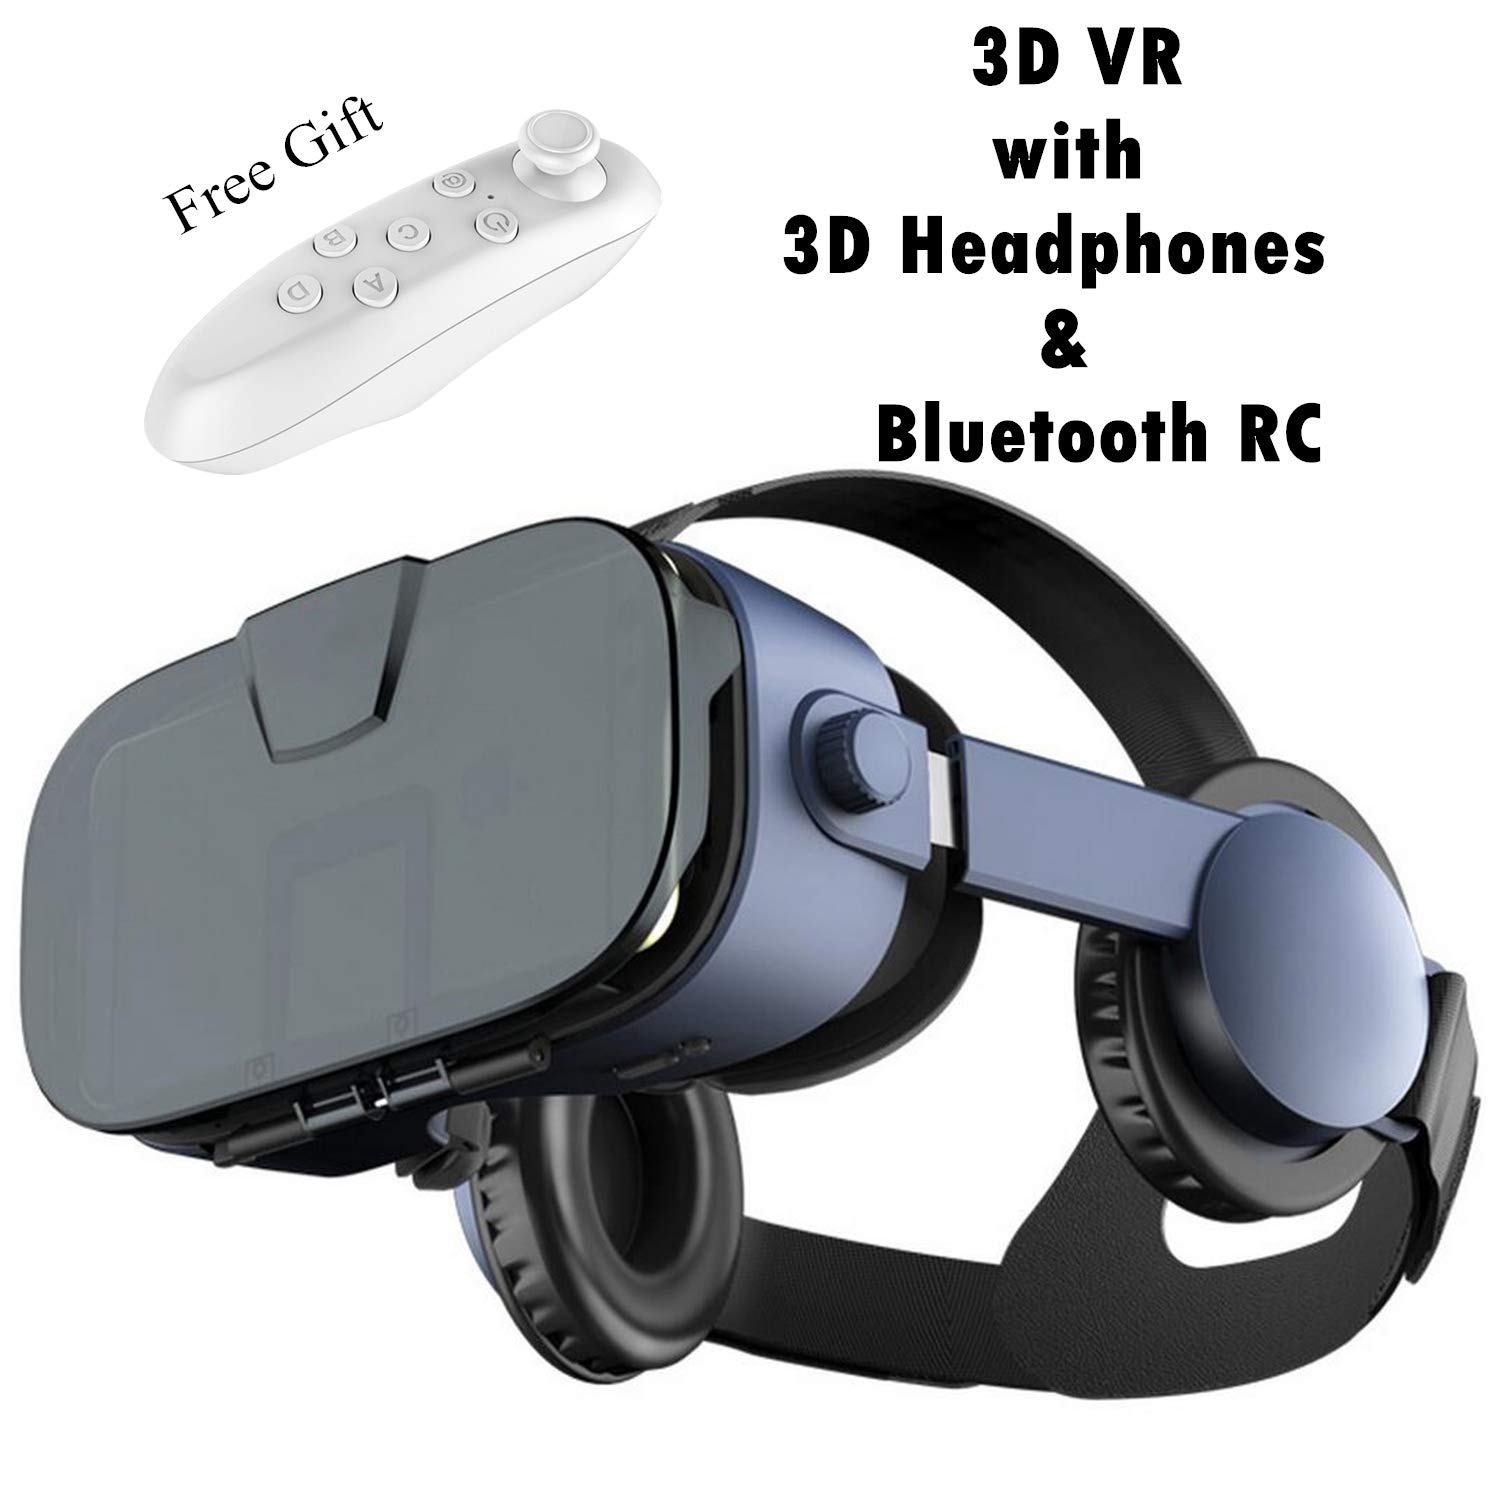 Virtual Reality Headset, 2018 VR Glasses w/ 3D Headphones &Remote(Gift), 3D IMAX Movie/Game Viewer Compatible for iPhone Xs XR X 8 7 6 S Plus Samsung Galaxy S9 S8 S7 S6 Edge + etc 4.0-6.33'' Cellphone by TSANGLIGHT